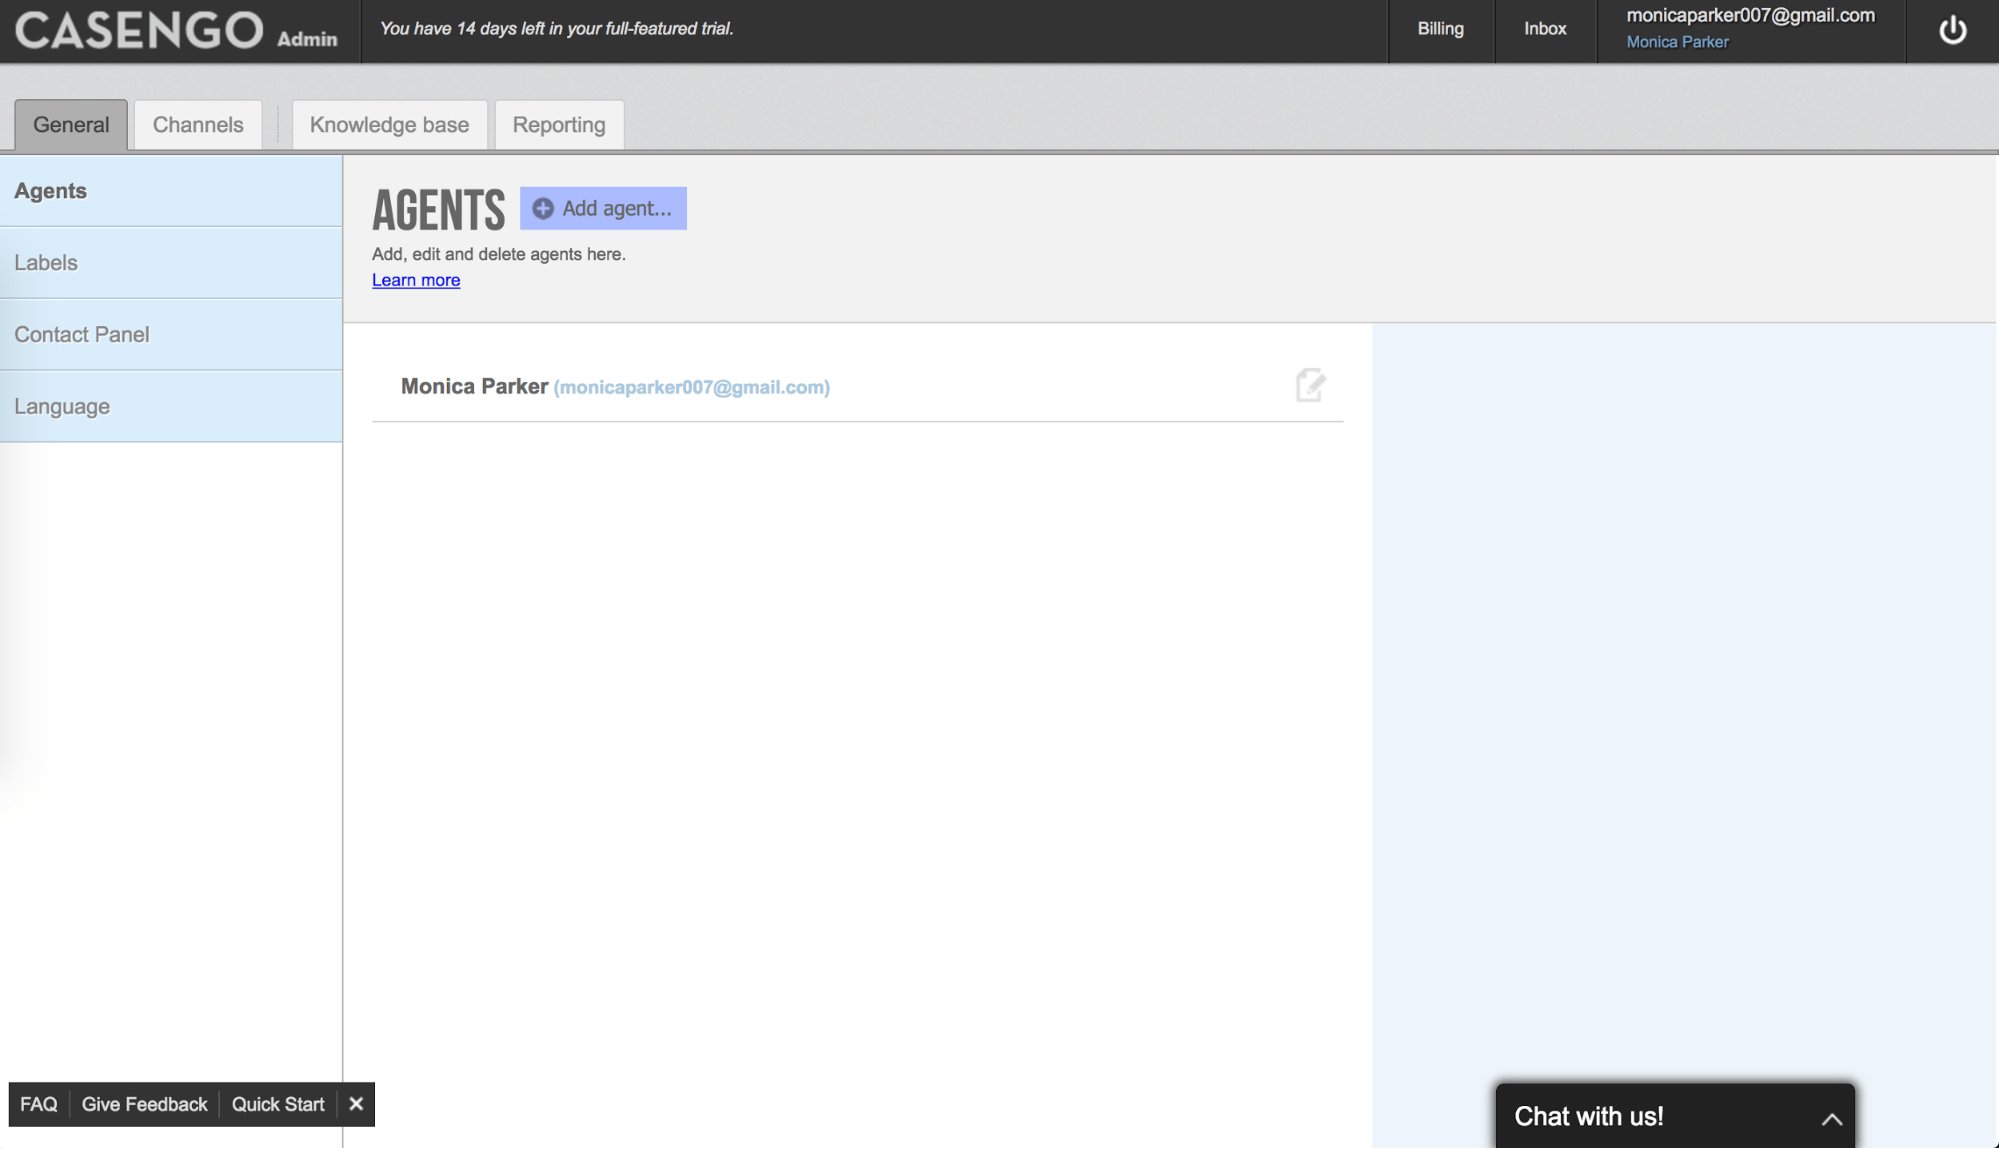 Casengo admin panel – agent's settings